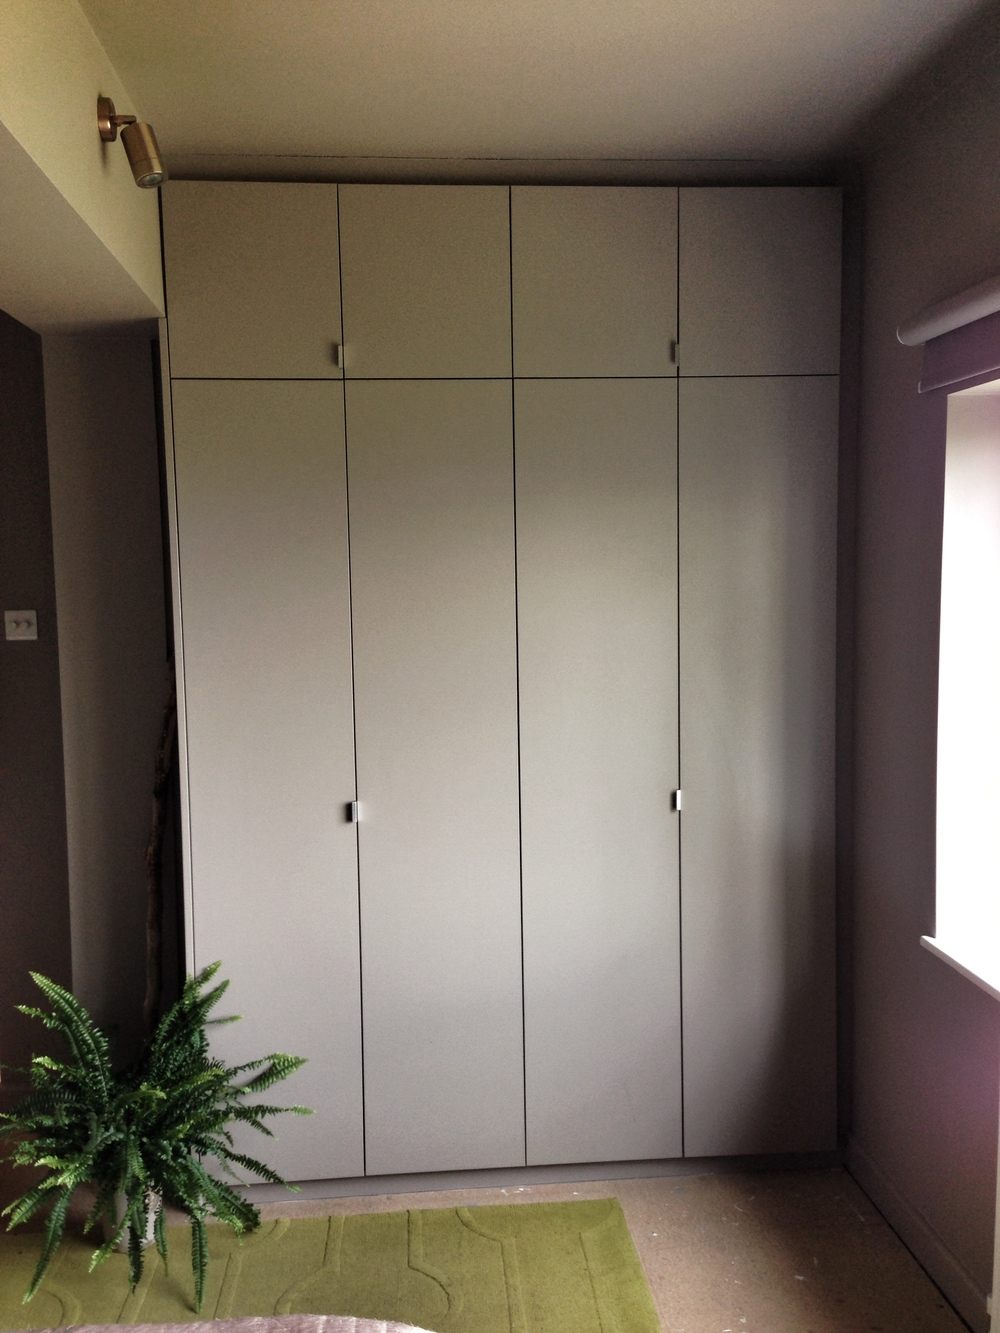 Flush modern contemporary doors with shadow gap detail.